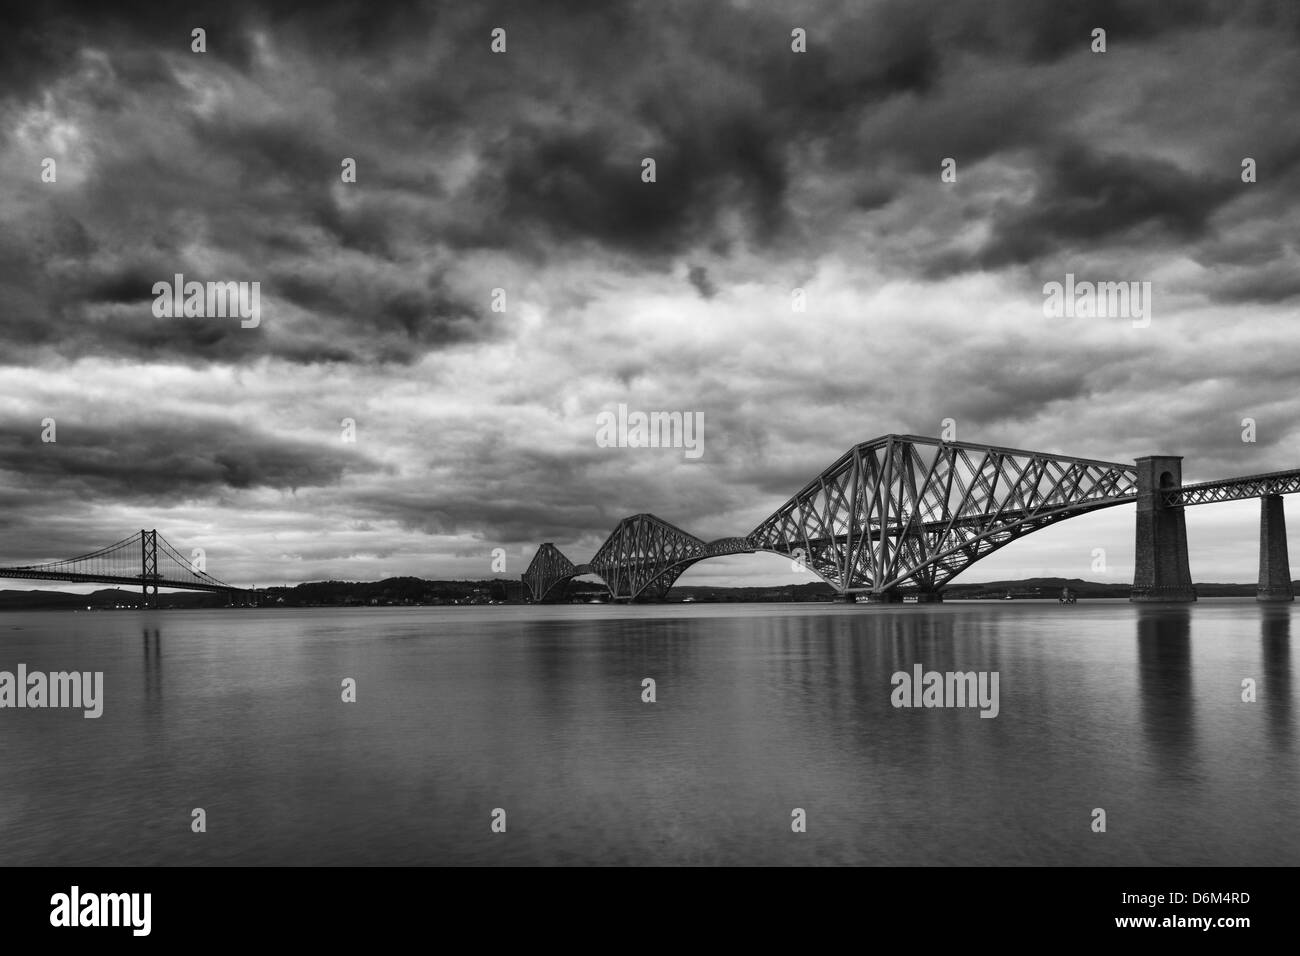 Scotland, Edinburgh, Forth Railway Bridge & Road Bridge connecting Scotland's capital city, Edinburgh, with - Stock Image